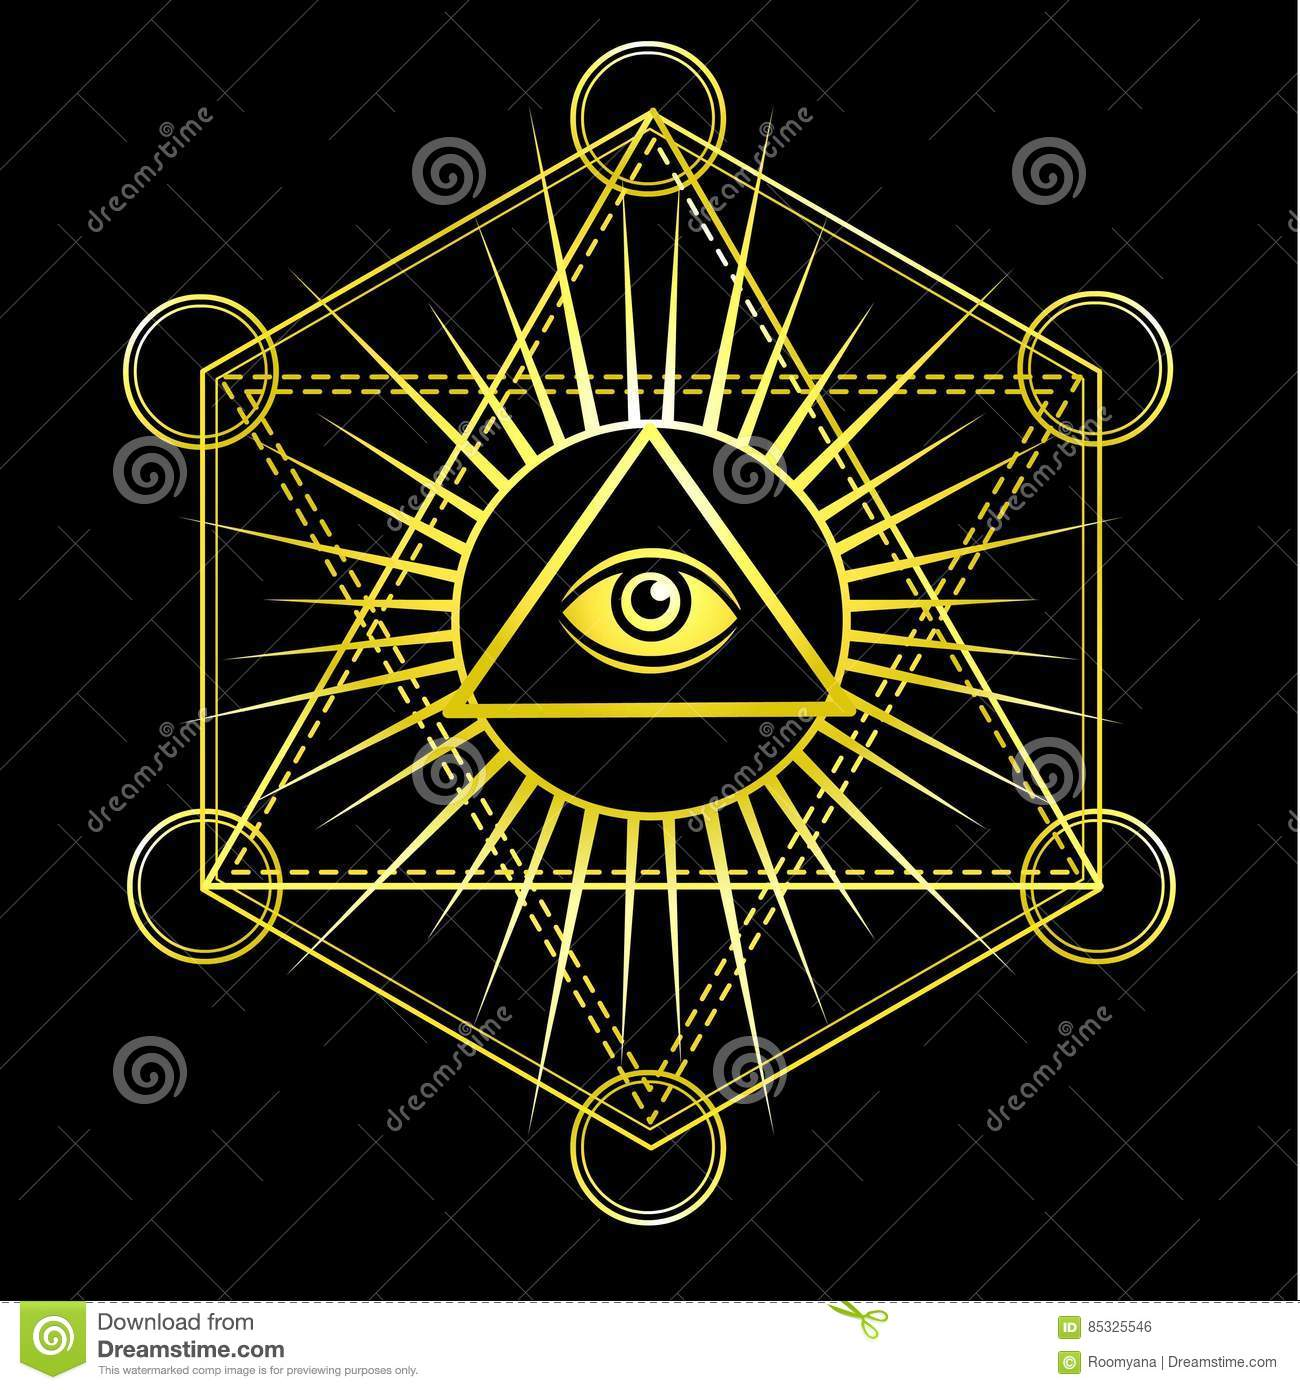 White Occult Hermetic Circle Vector Illustration Stock ...  |Ancient Sacred Geometry